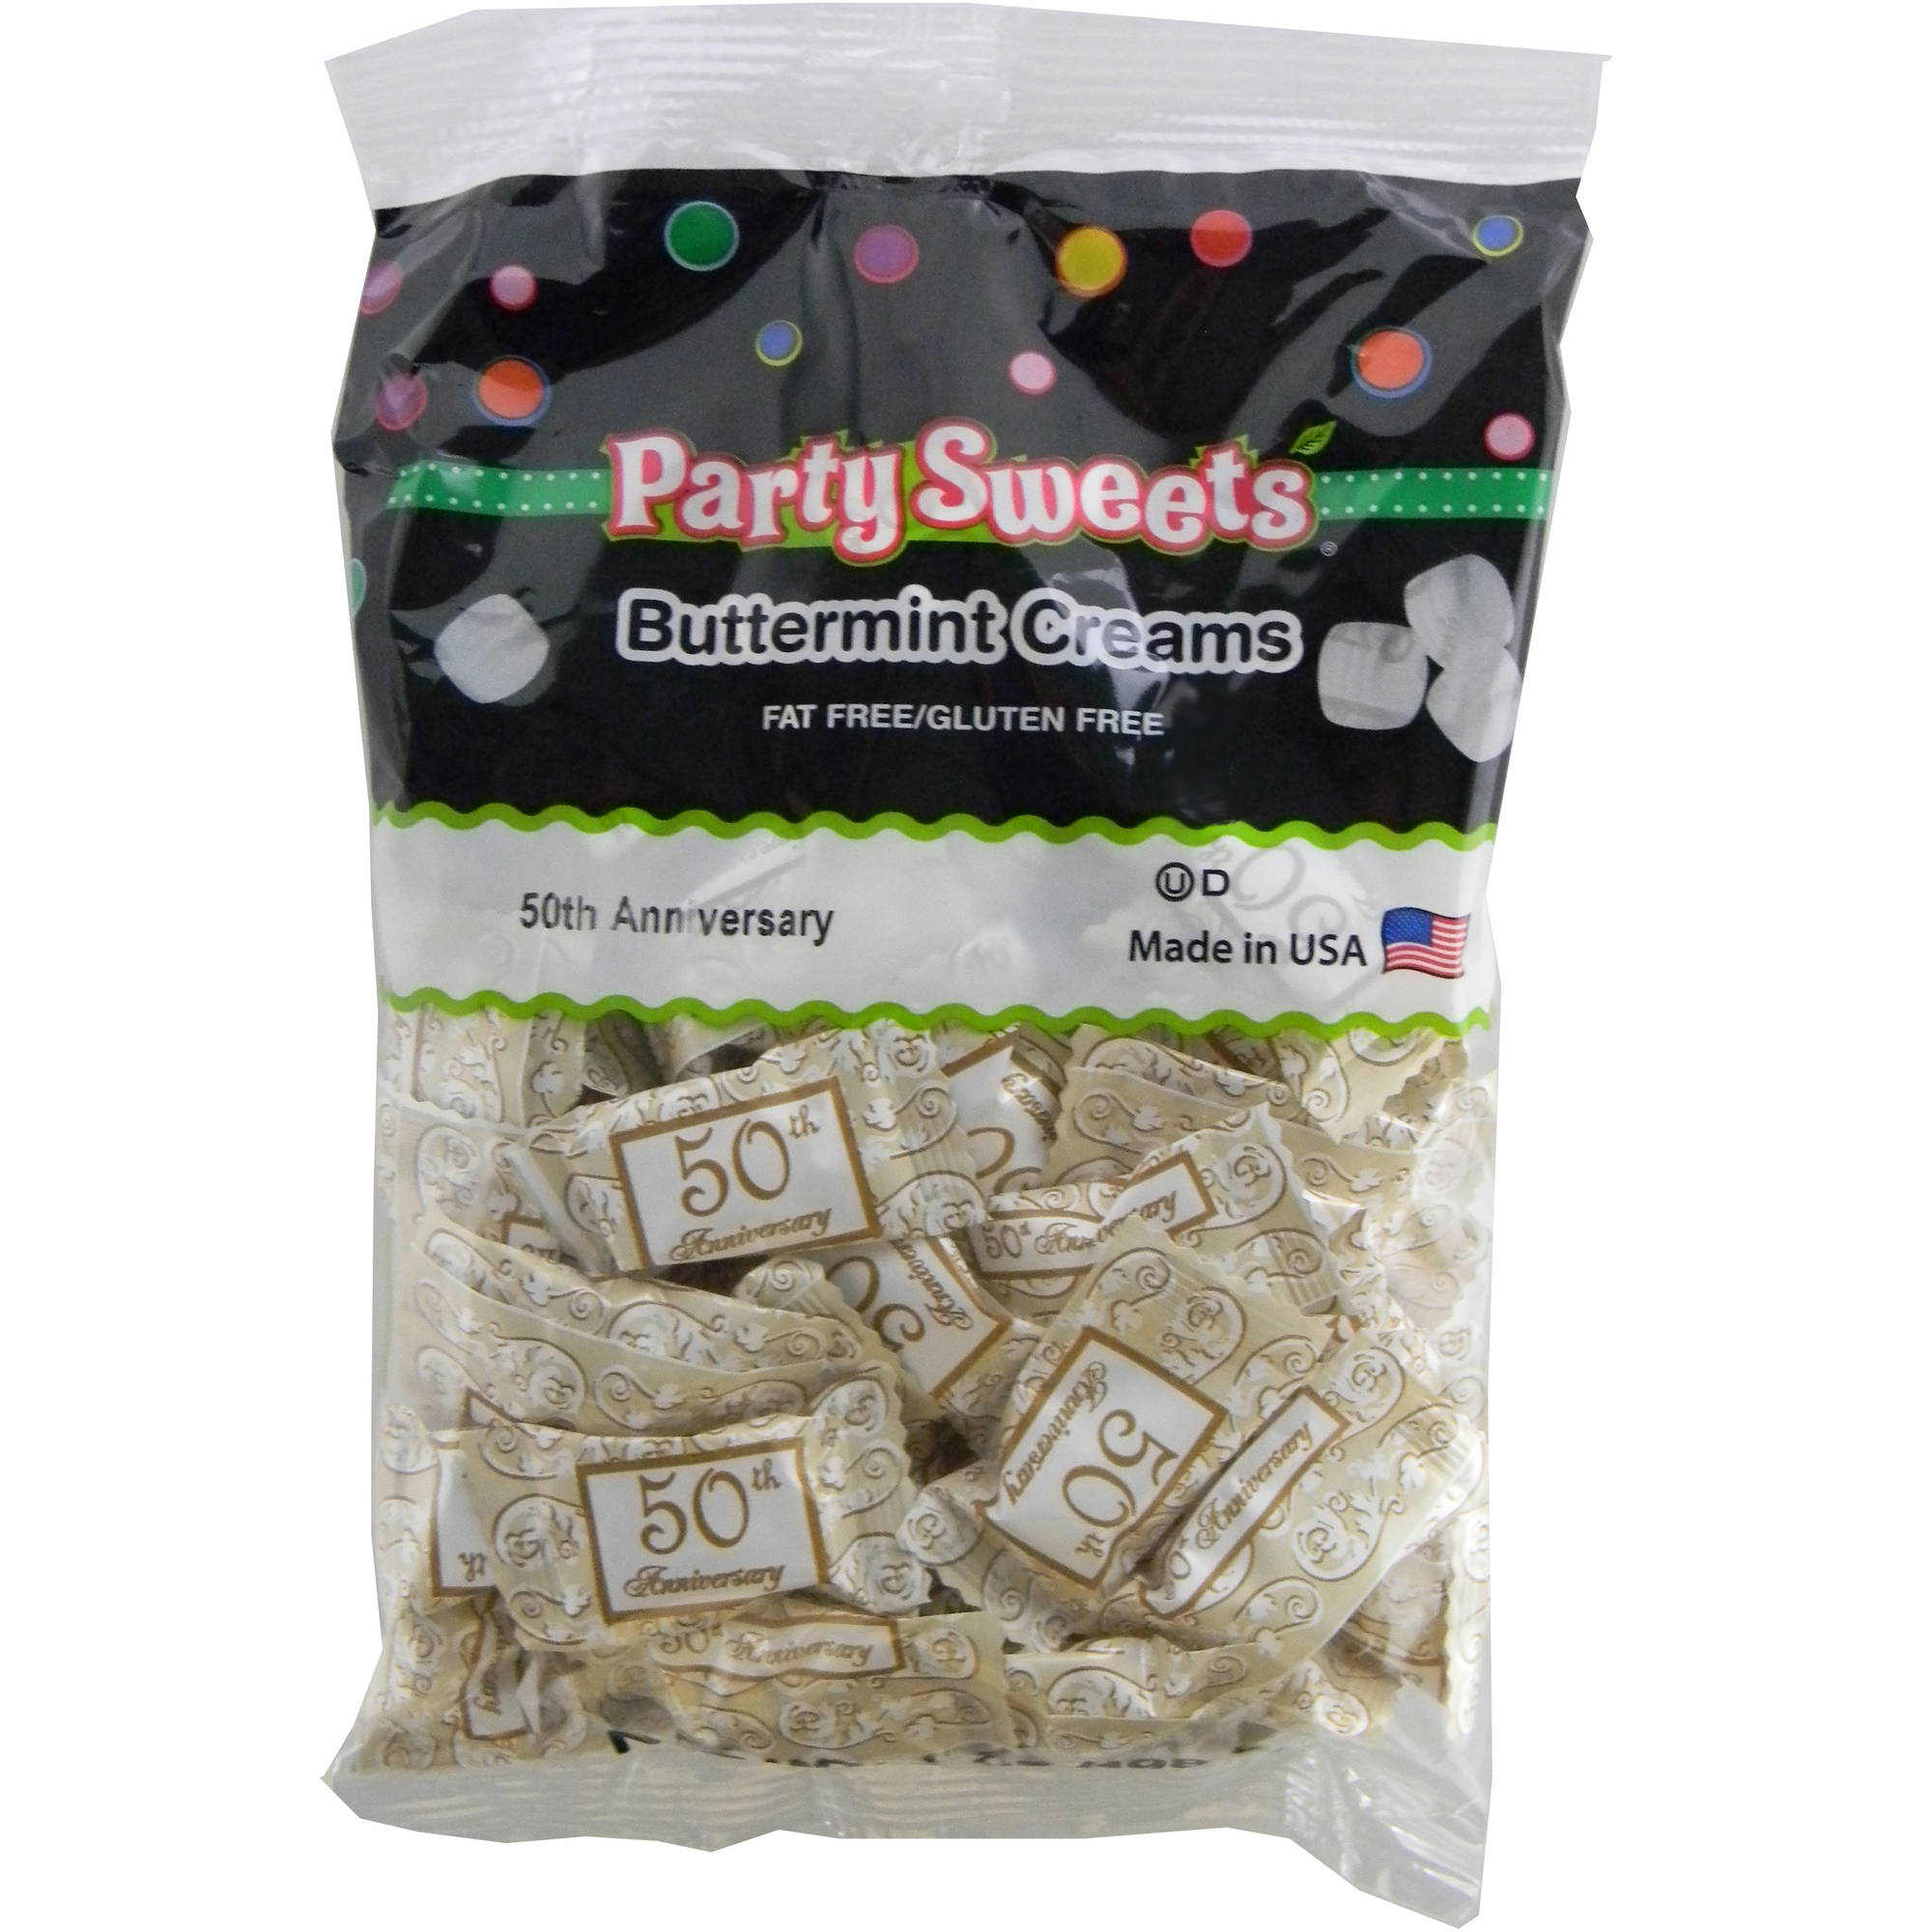 Party Sweets 50th Anniversary Buttermint Creams Candy, 7 oz